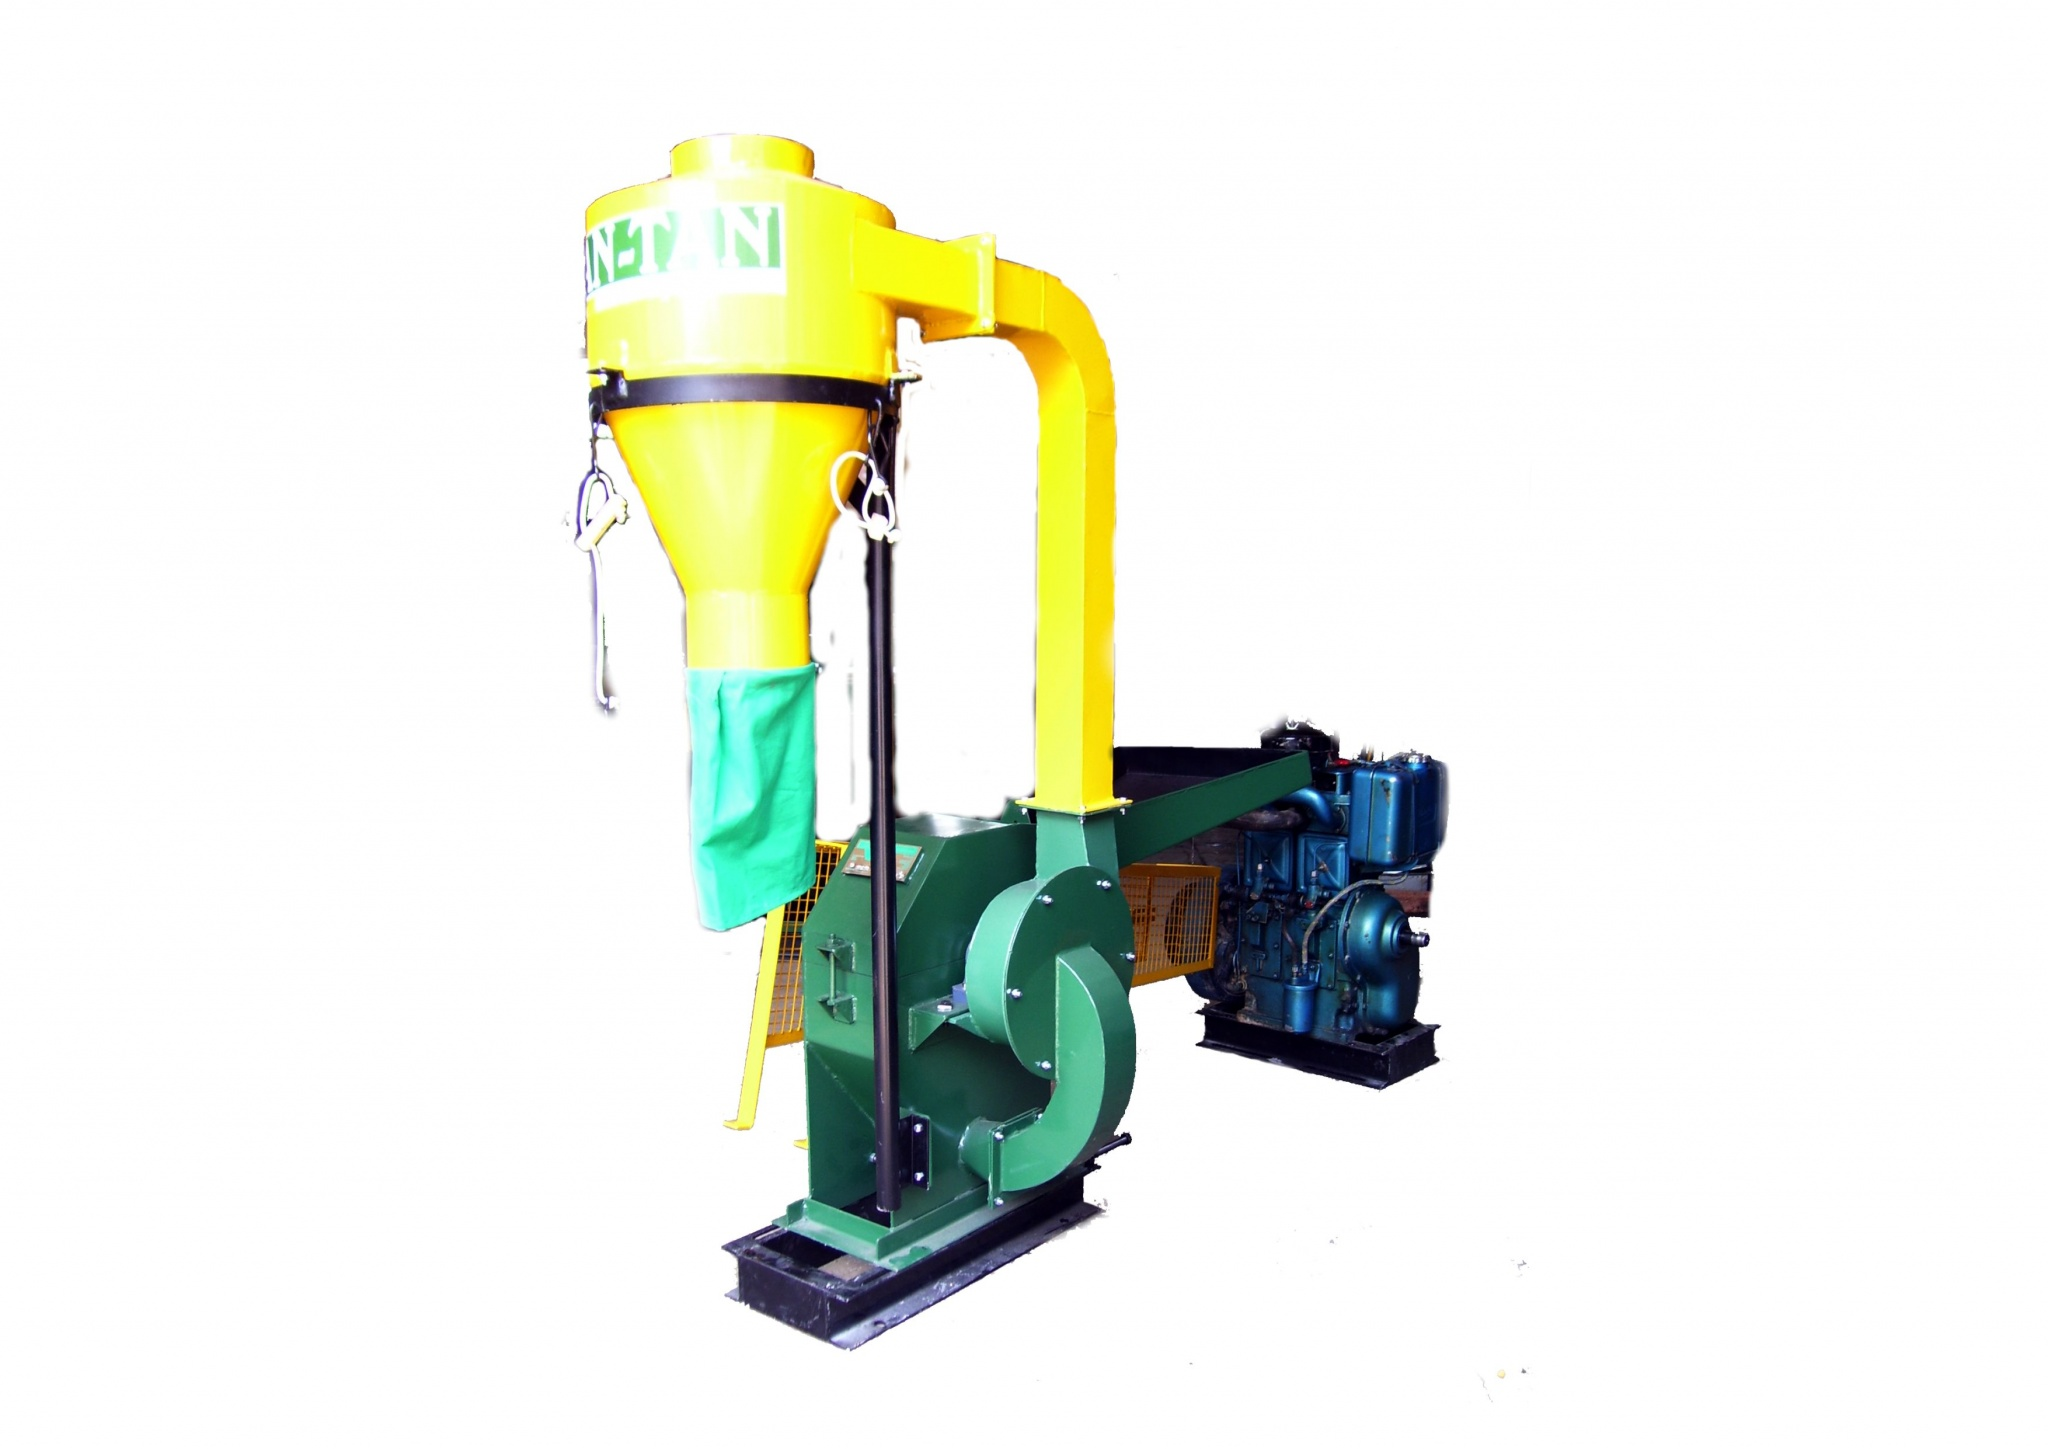 https://www.tanroy.com/products/maize_sheller/PKBbX6BqLpkq433838